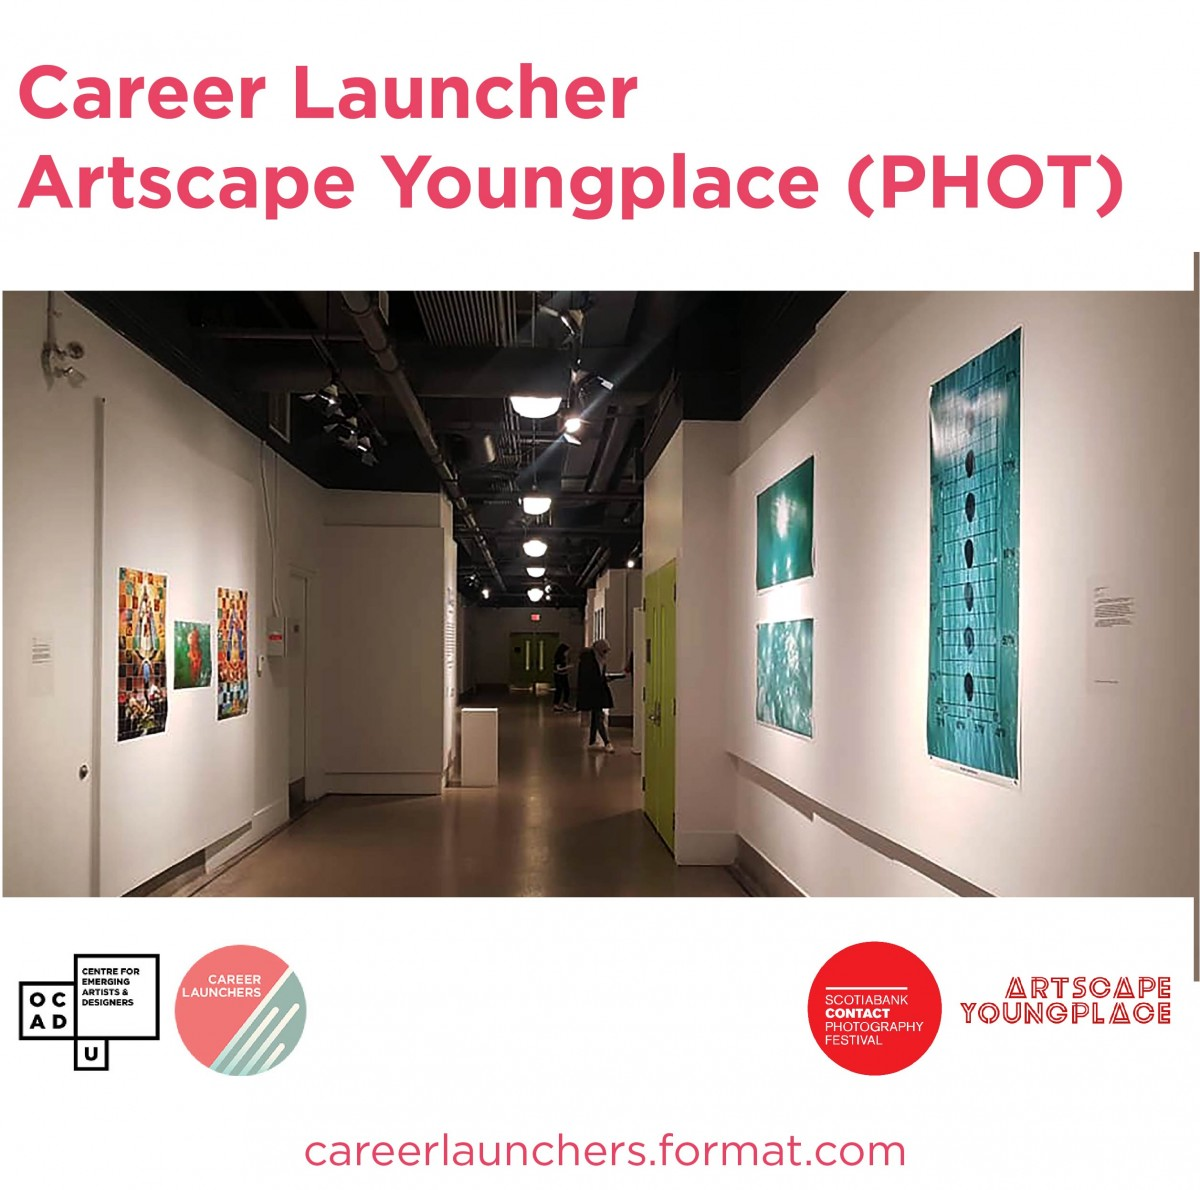 Call for Applications - Artscape Youngplace Photo Exhibition Career Launcher